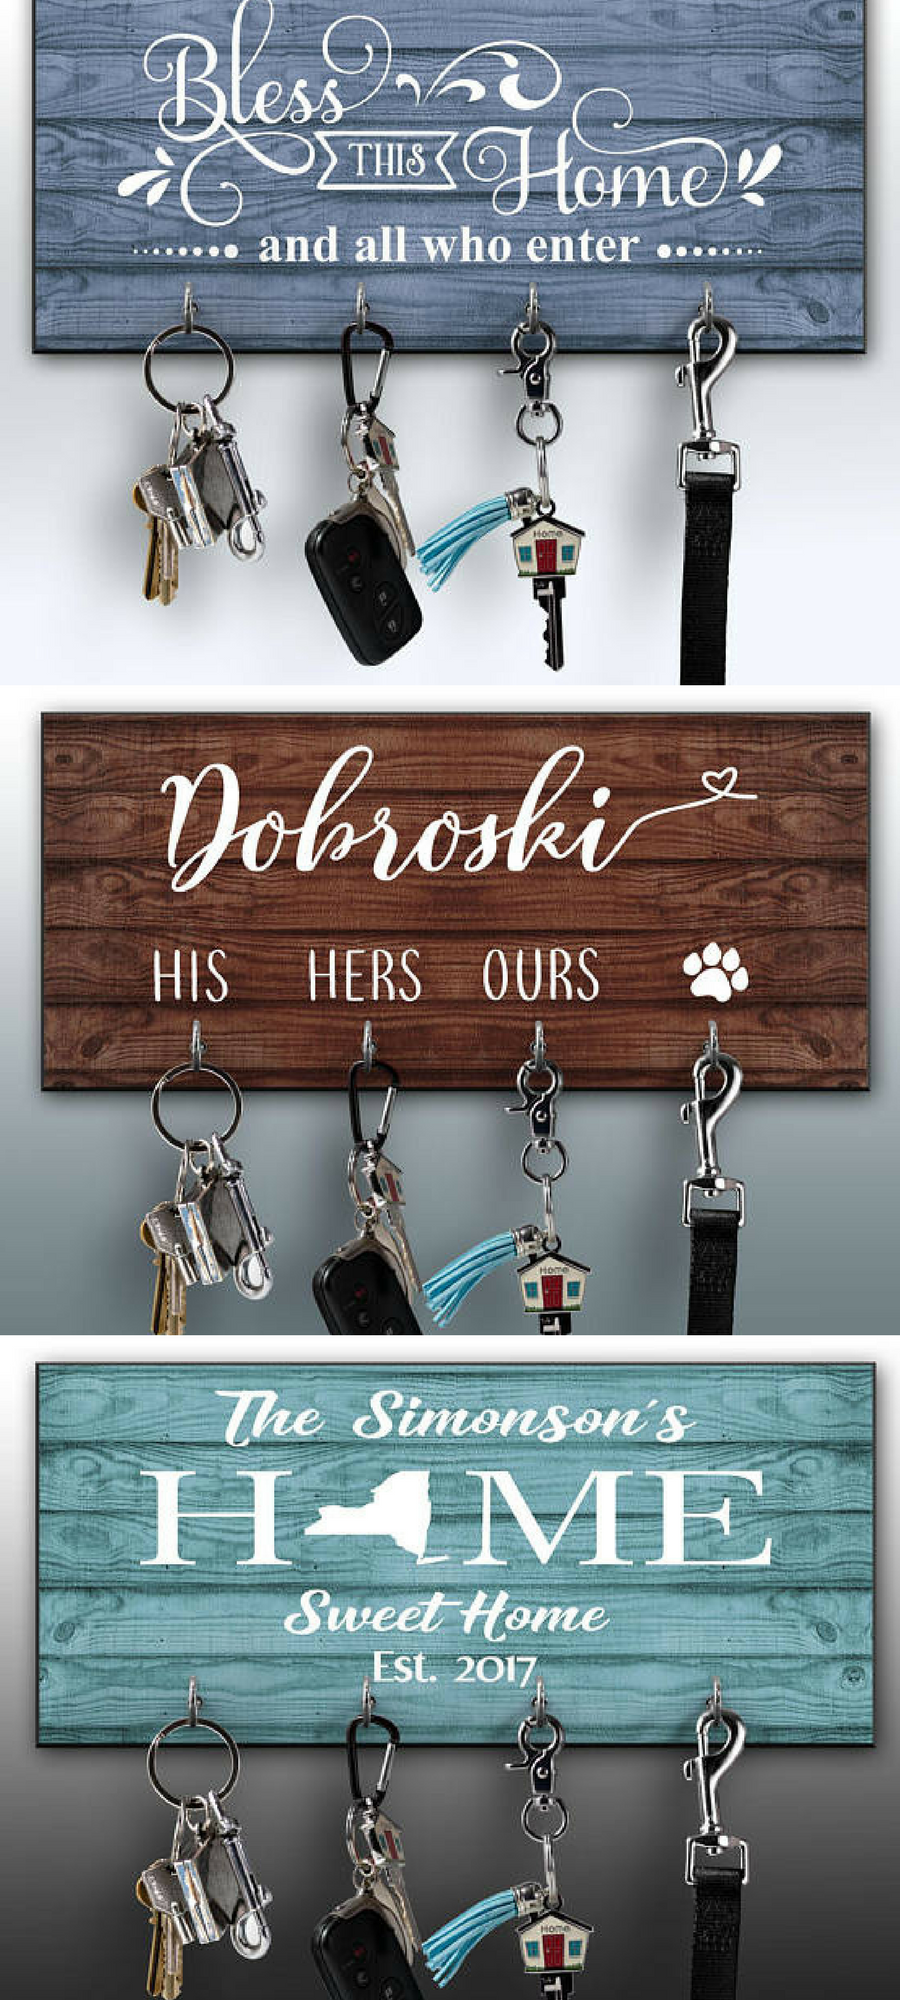 Personalized Key Ring Holder Family Key Holder Home Key Rack Home Sweet Home Unique Housewarming Gifts Personalized Housewarming Gifts House Warming Gifts